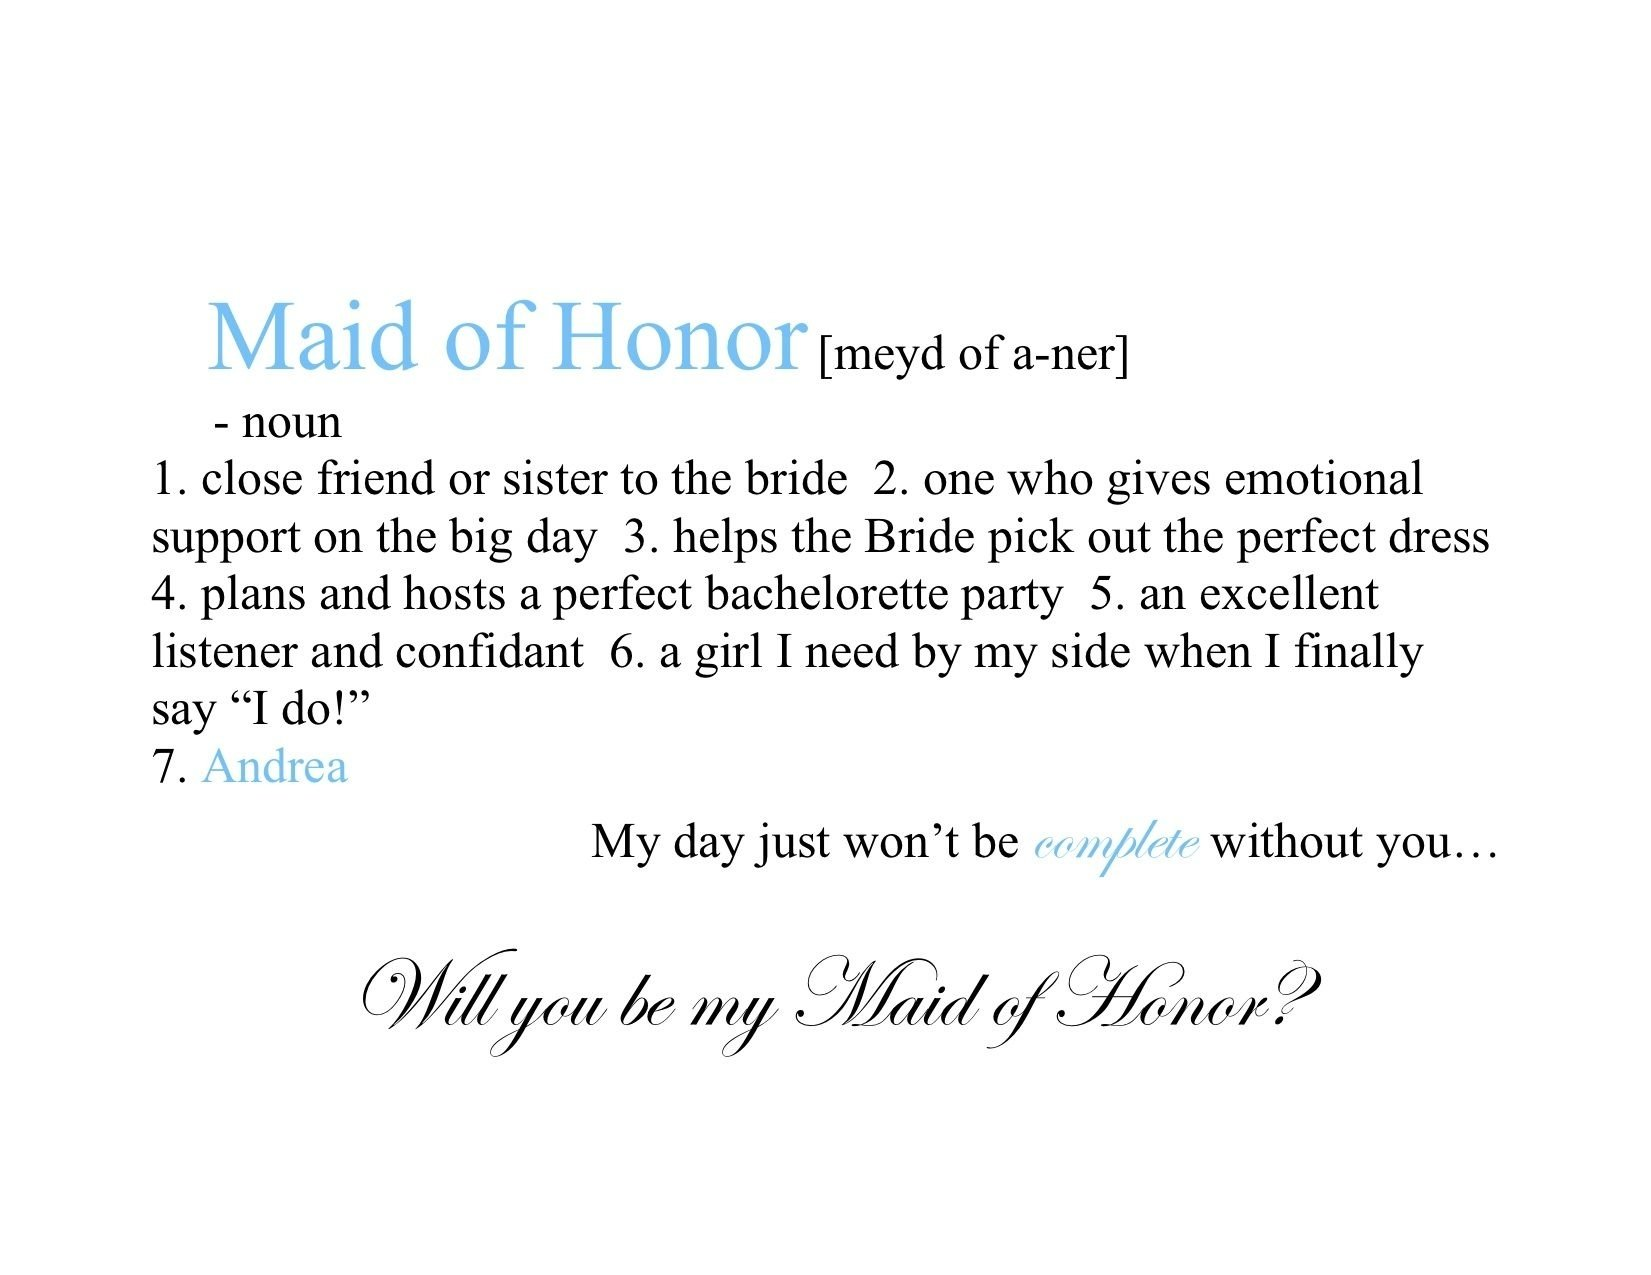 10 Beautiful Maid Of Honor Speech Ideas maid of honor definition wedding pinterest definitions maids